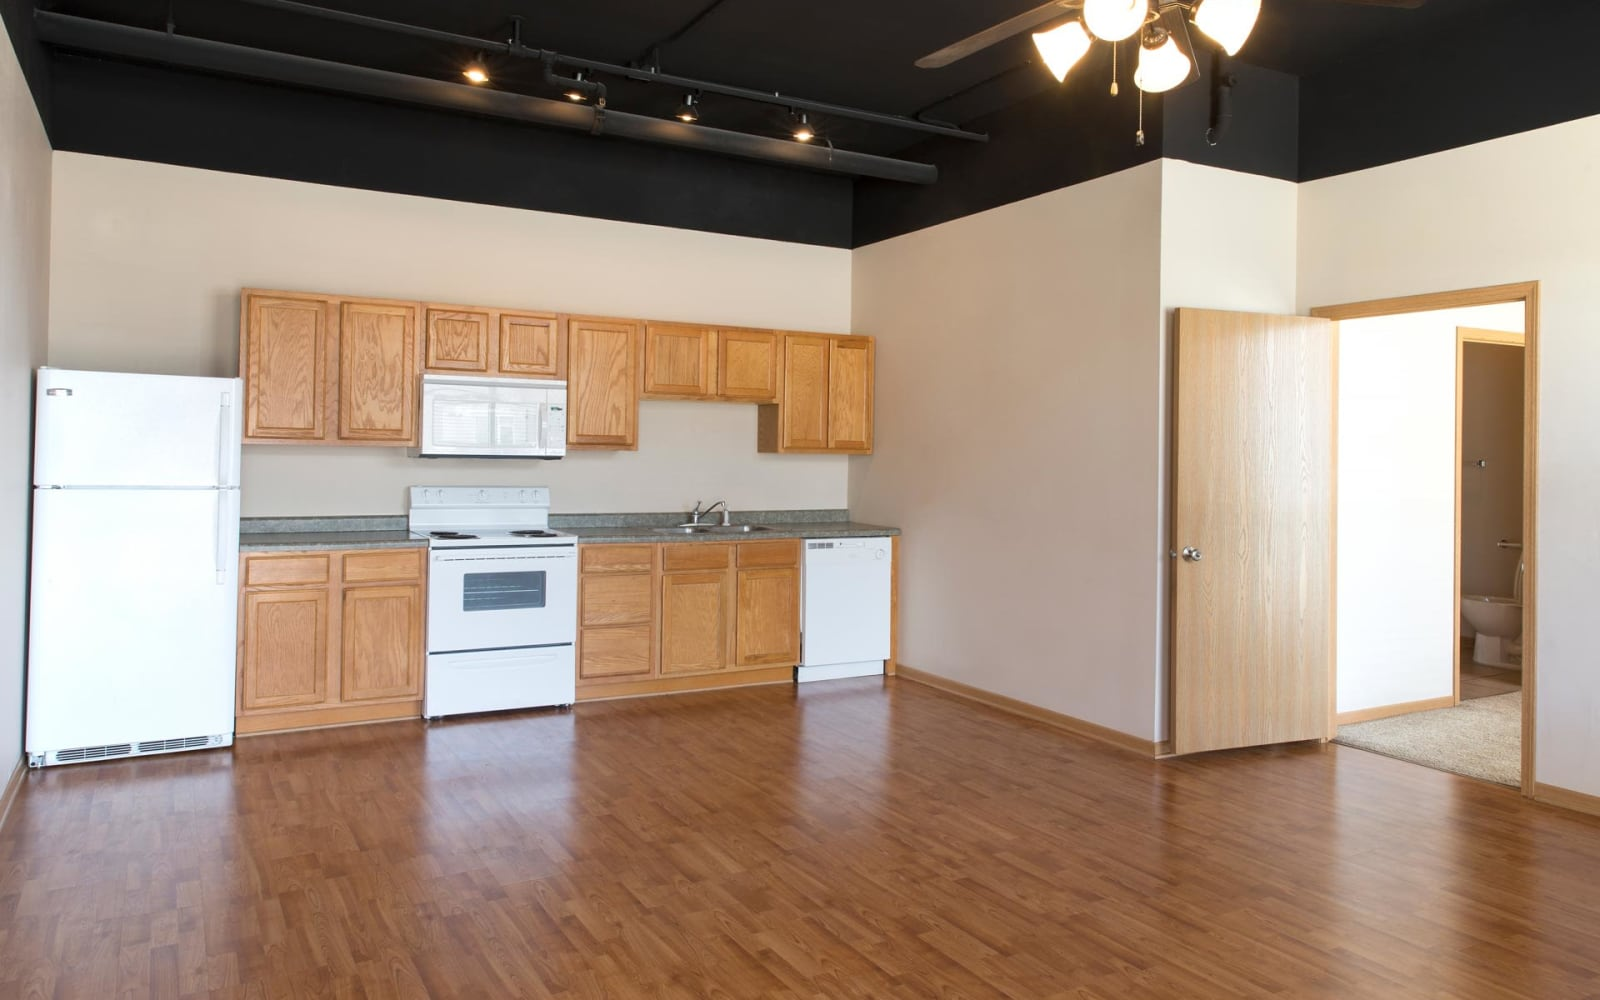 Single bedroom apartment kitchen and living room at West Towne in Ames, Iowa